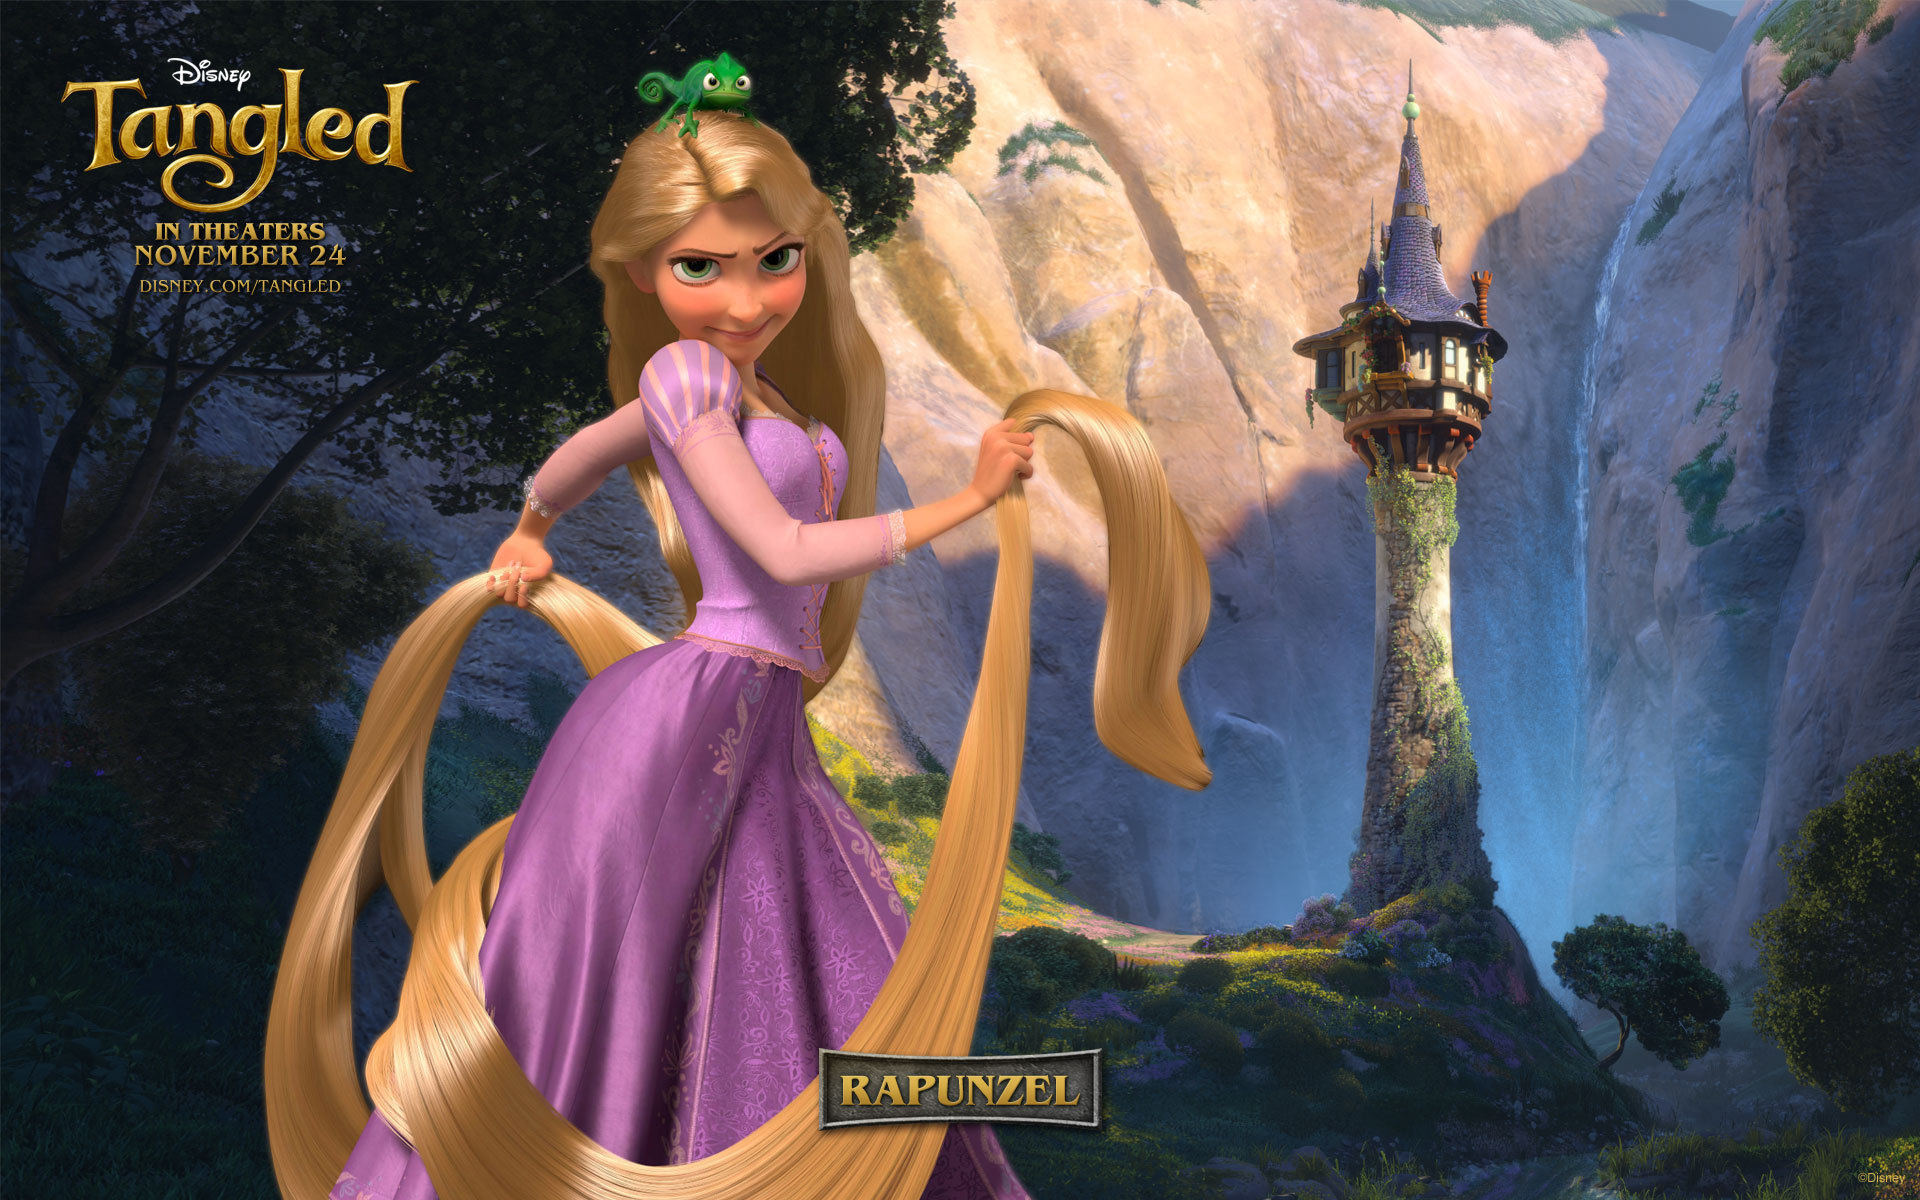 Tangled Disney Wallpaper   Princess Rapunzel from Tangled Wallpaper 1920x1200